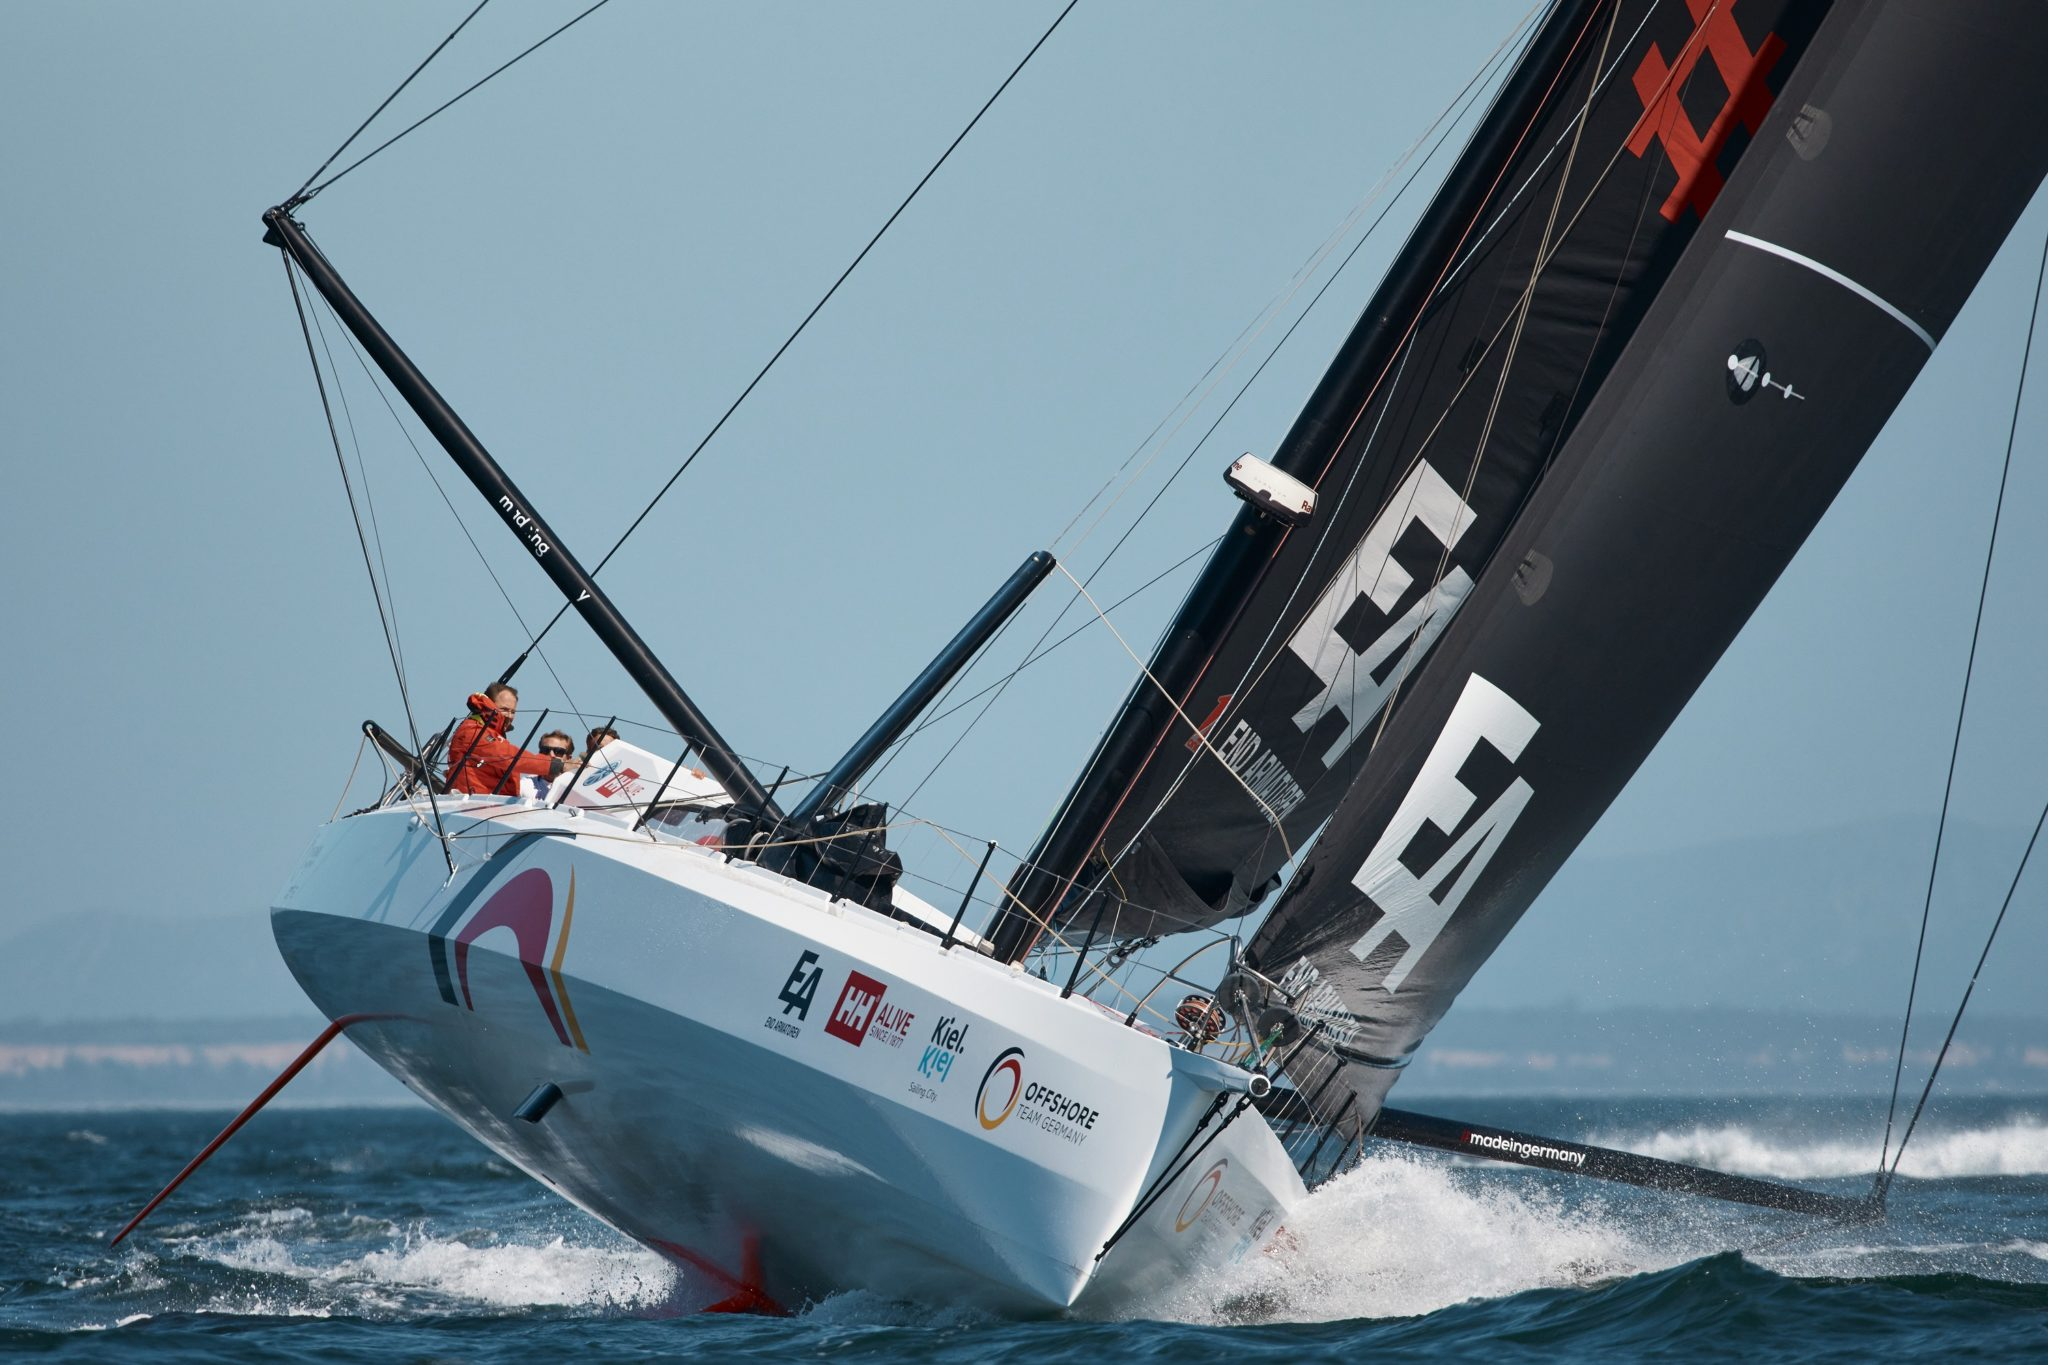 OTG_LES_SABLES, sailing, lorient, france, action, iomoca, 60, racing, portugal, TOR, theoceanraceeurope